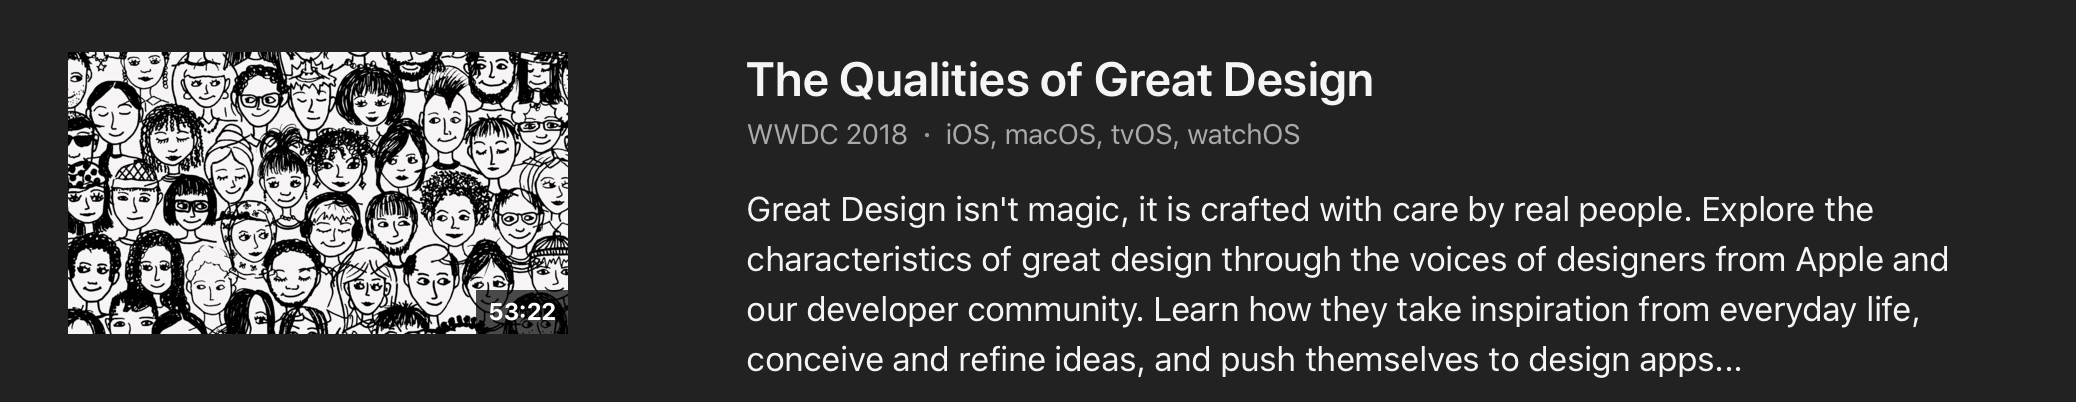 The Qualities of Great Design.png